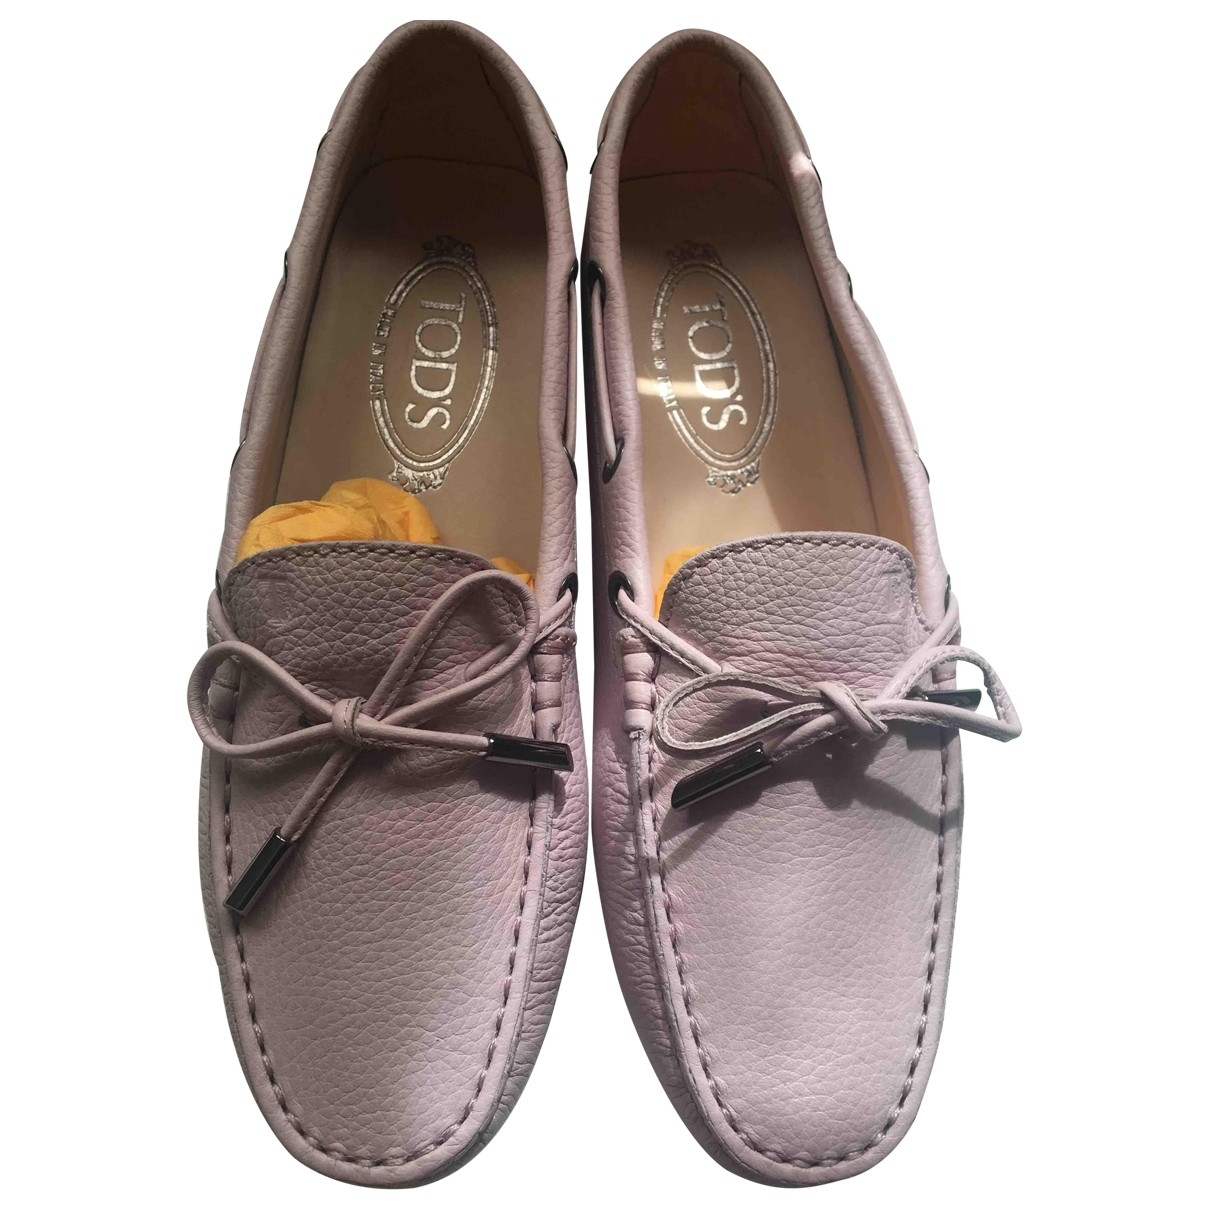 Tod's Gommino Pink Leather Flats for Women 36 EU